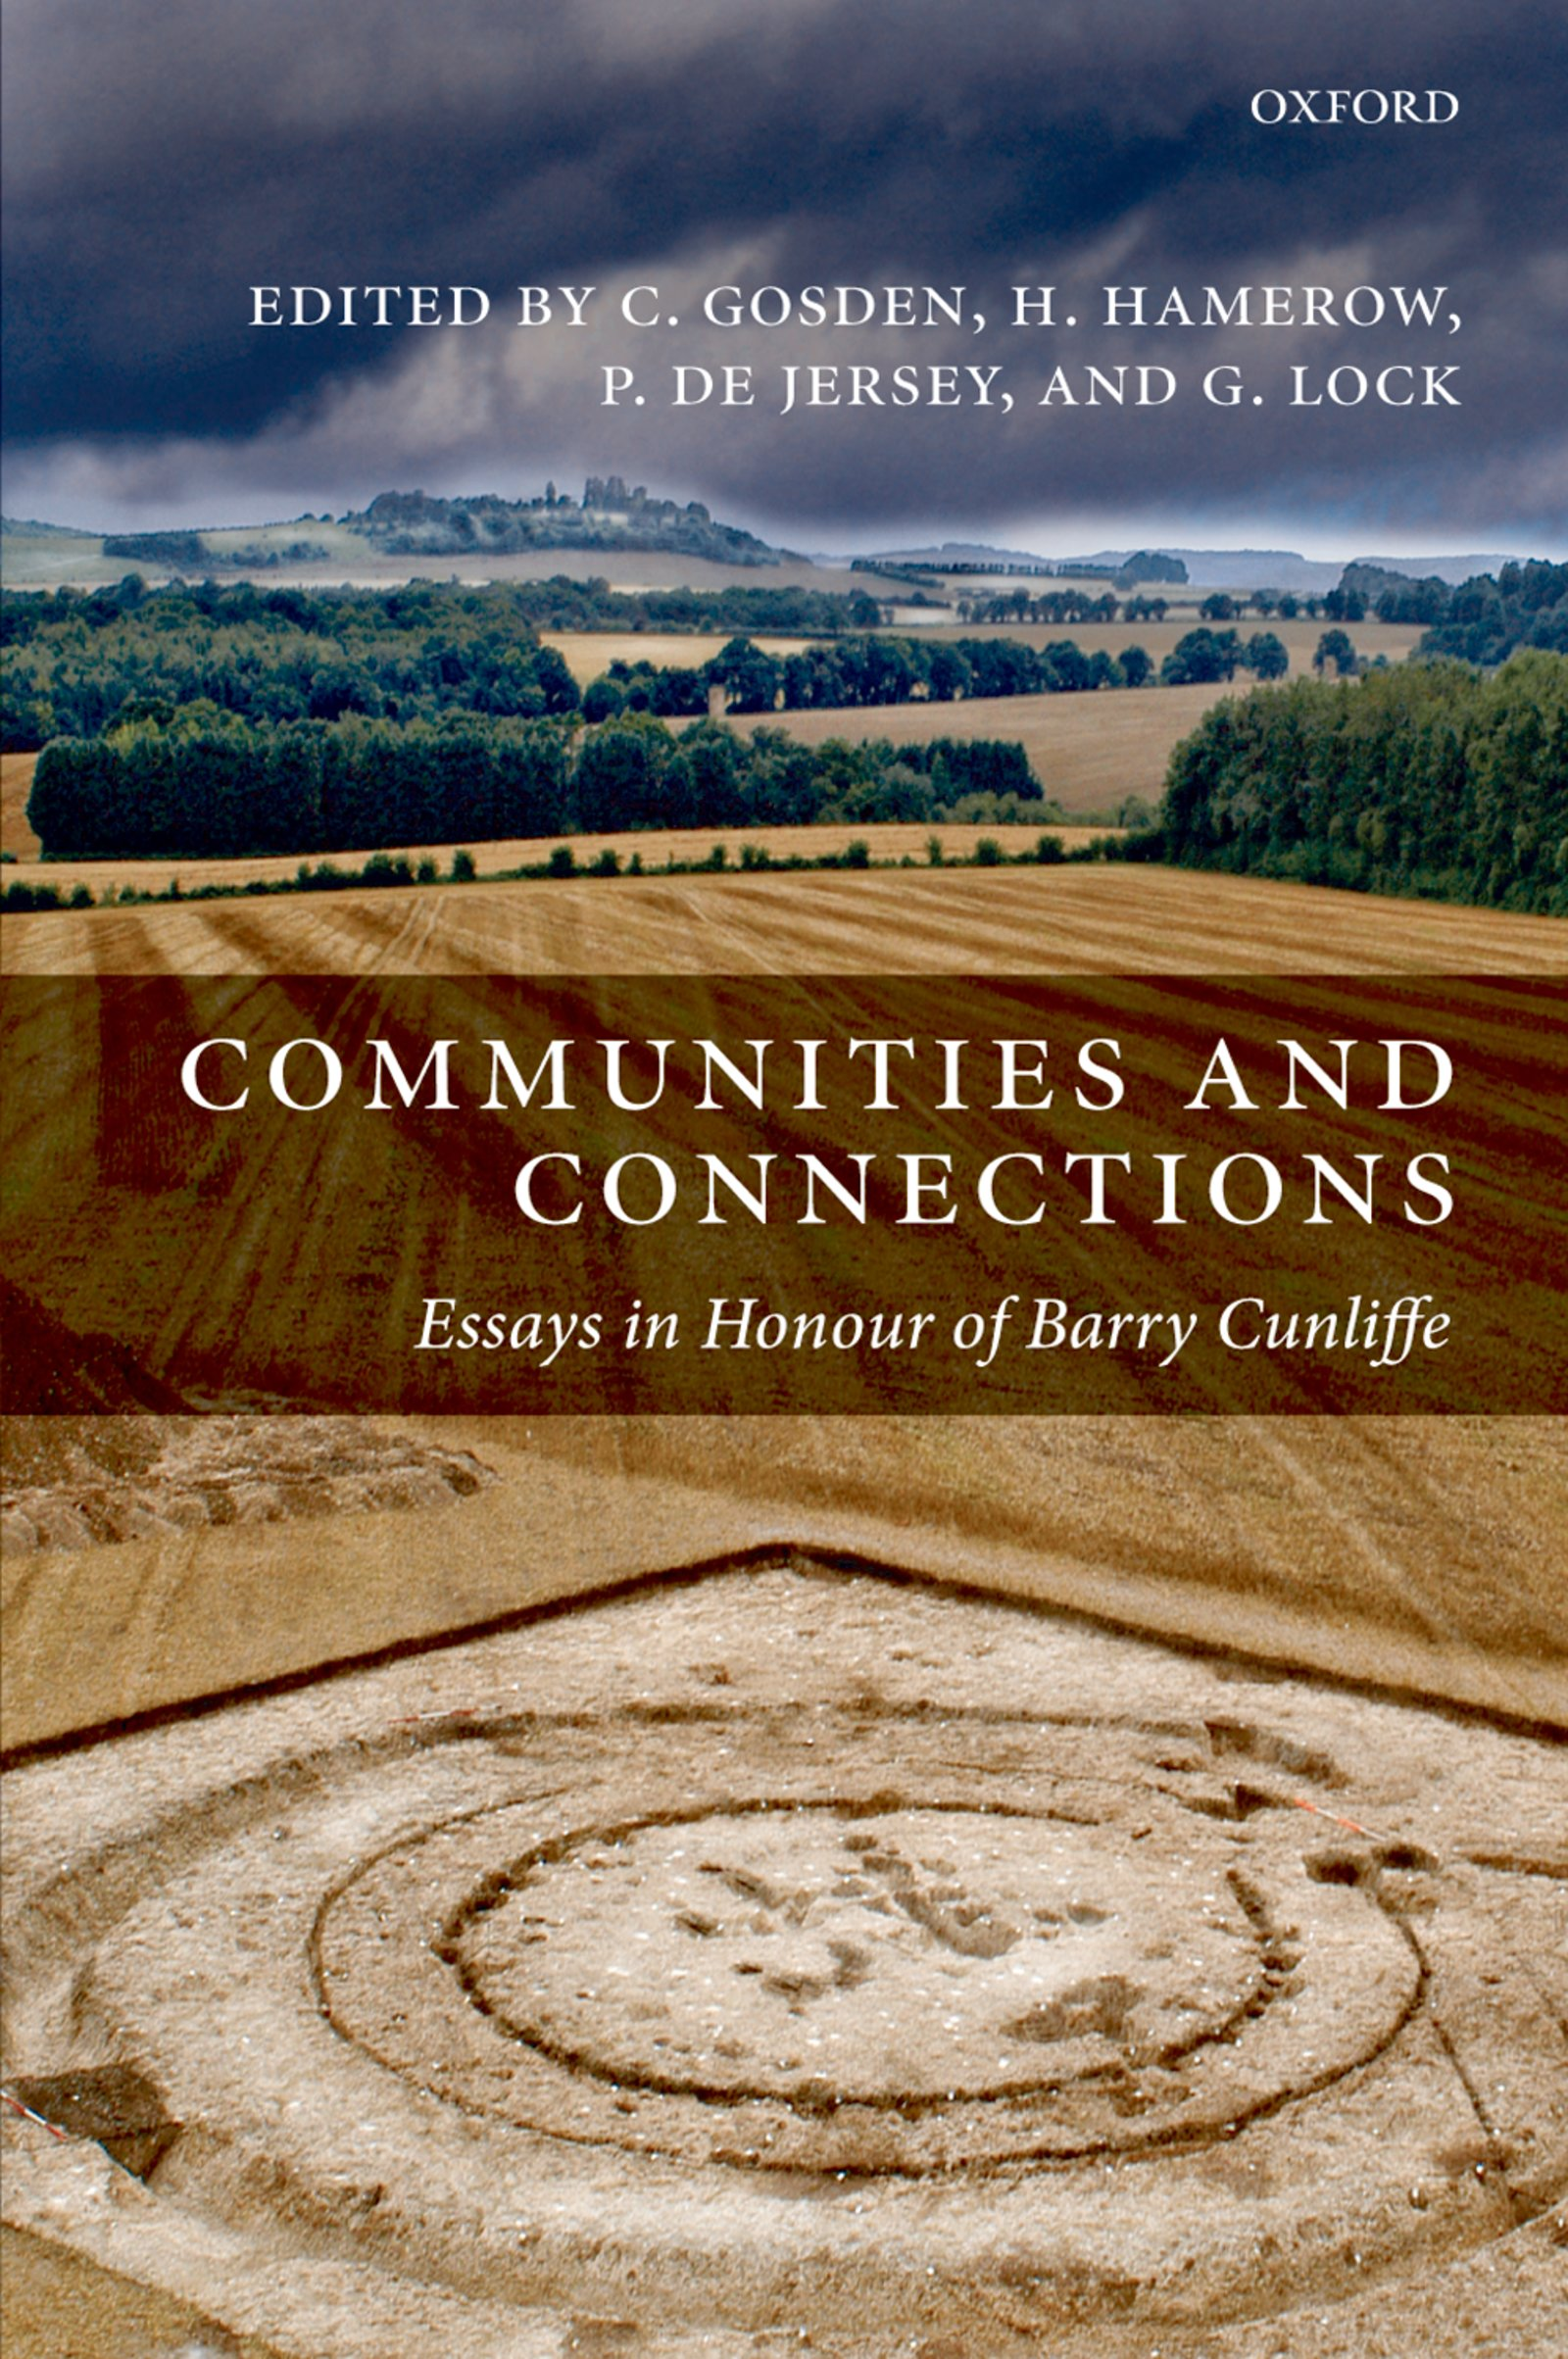 Communities and Connections – Essays in Honour of Barry Cunliffe - Oxford Scholarship Online